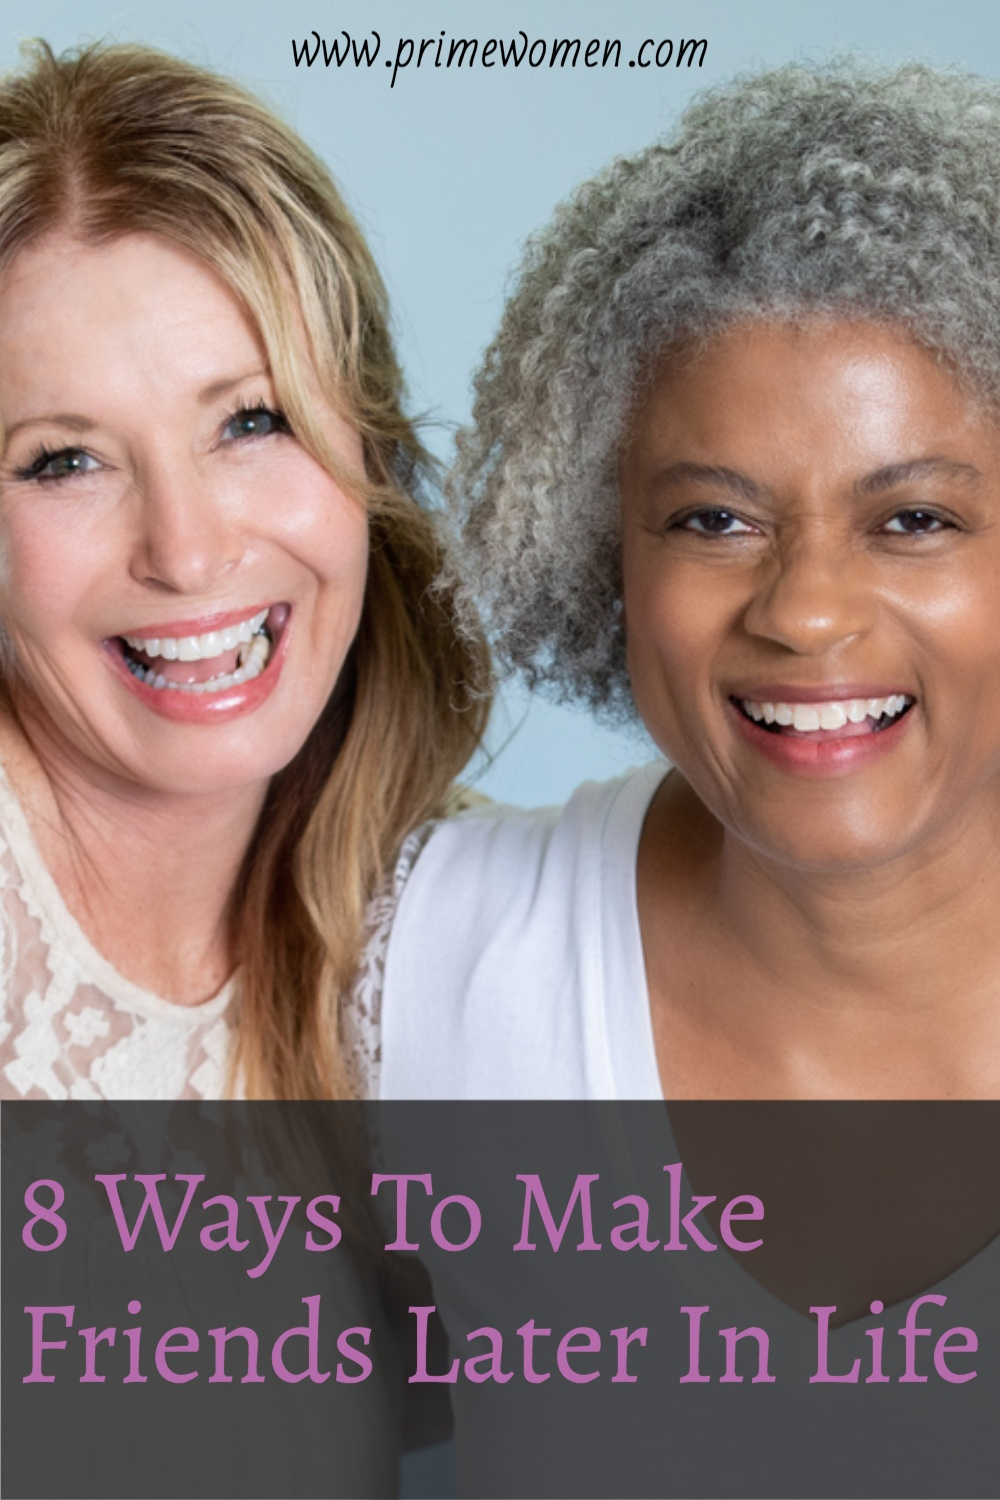 8 ways to make friends later in life